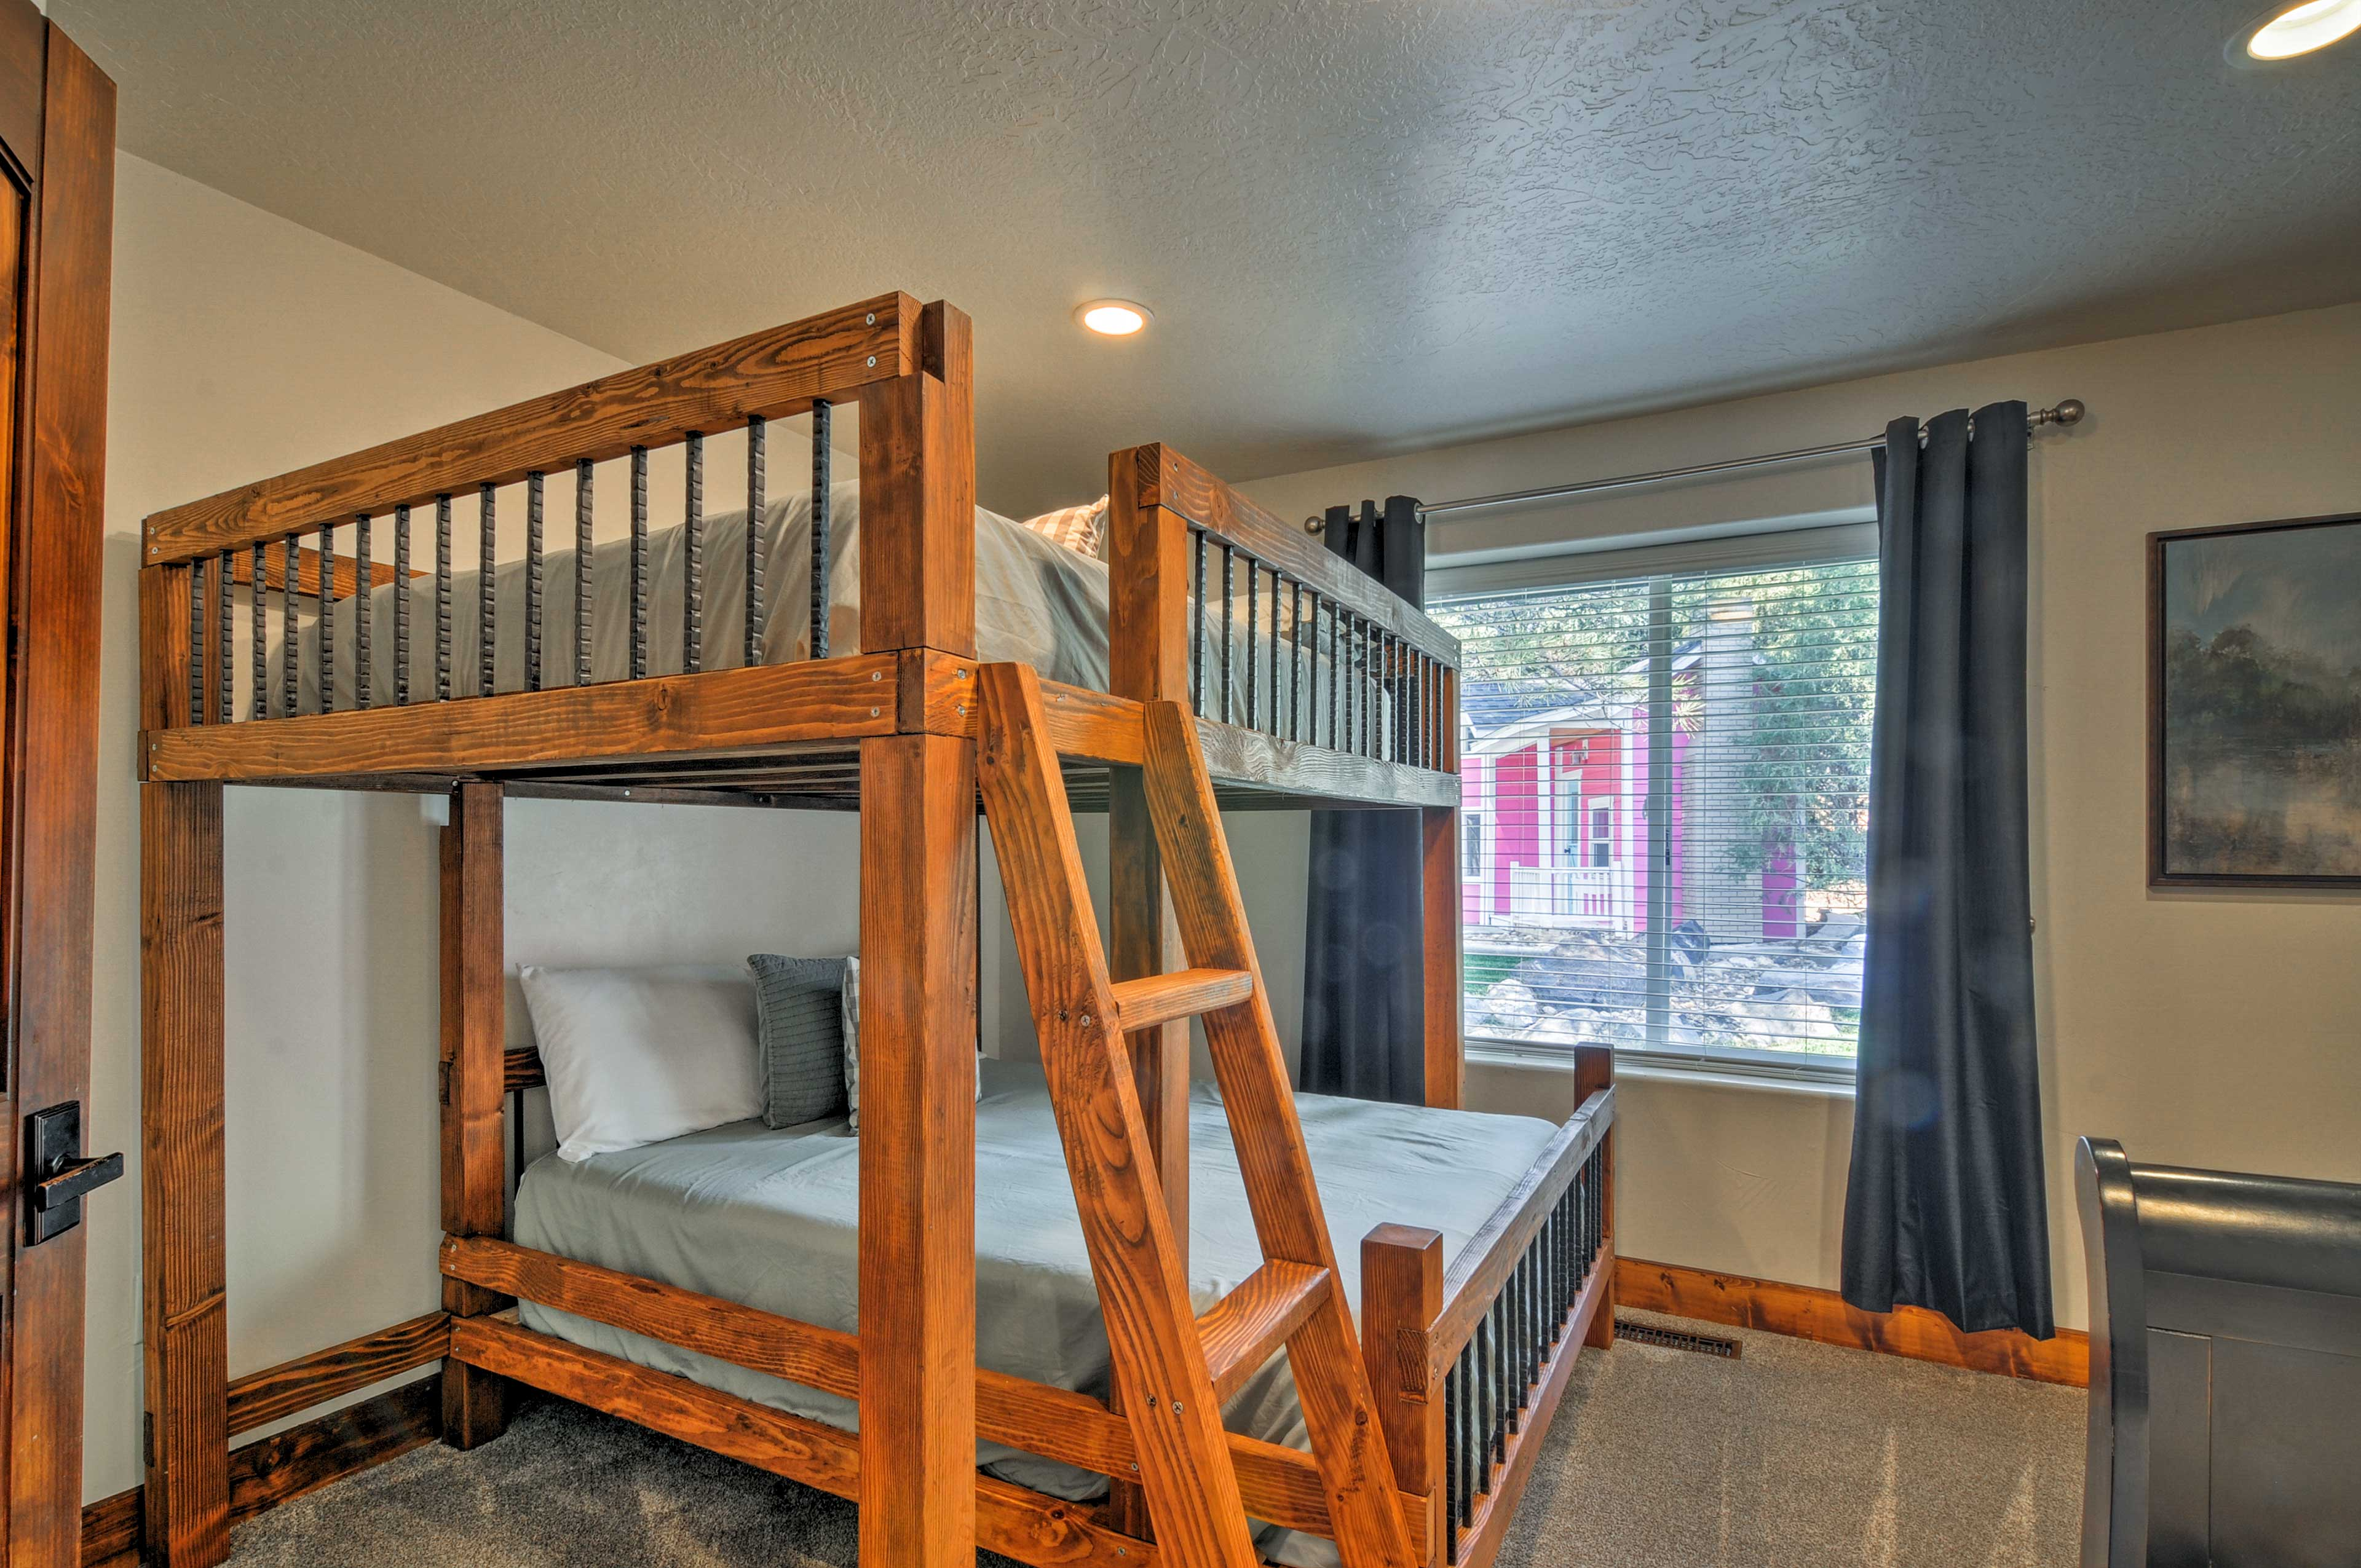 This queen-over-queen bunk bed is perfect for kids and adults alike.